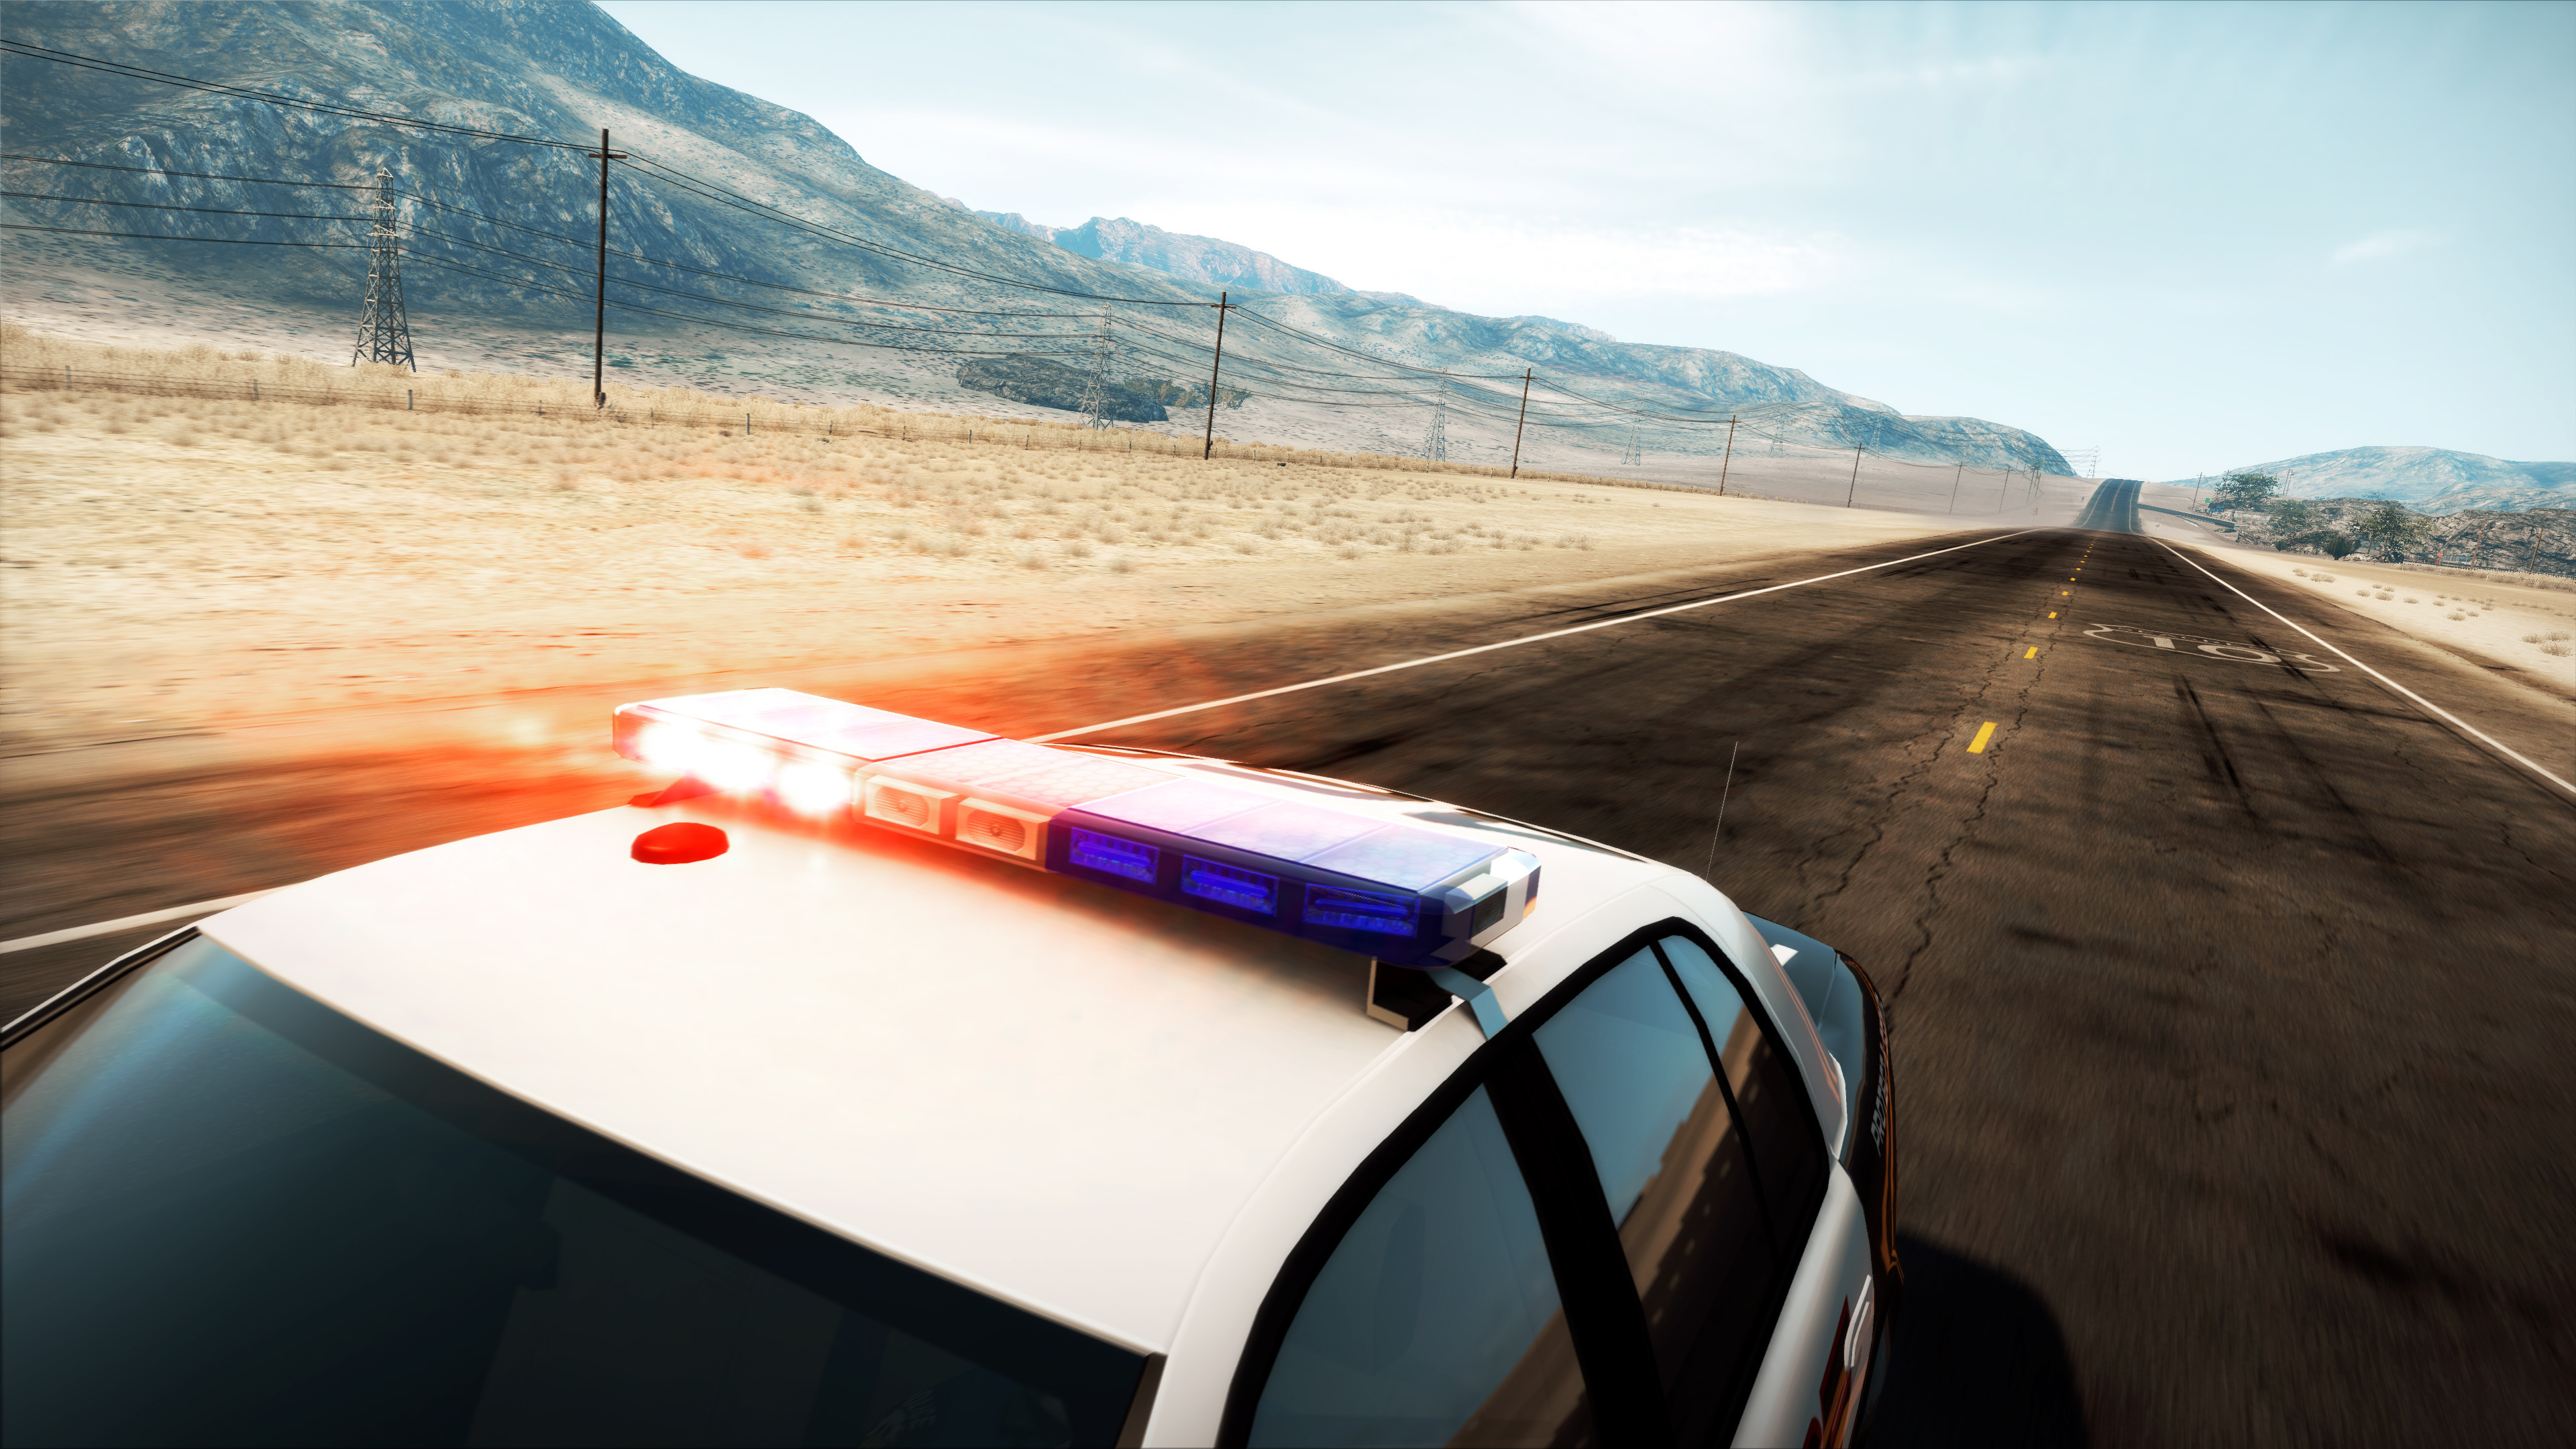 Crown Vic Car Wallpaper Need For Speed Wallpapers Pictures Images